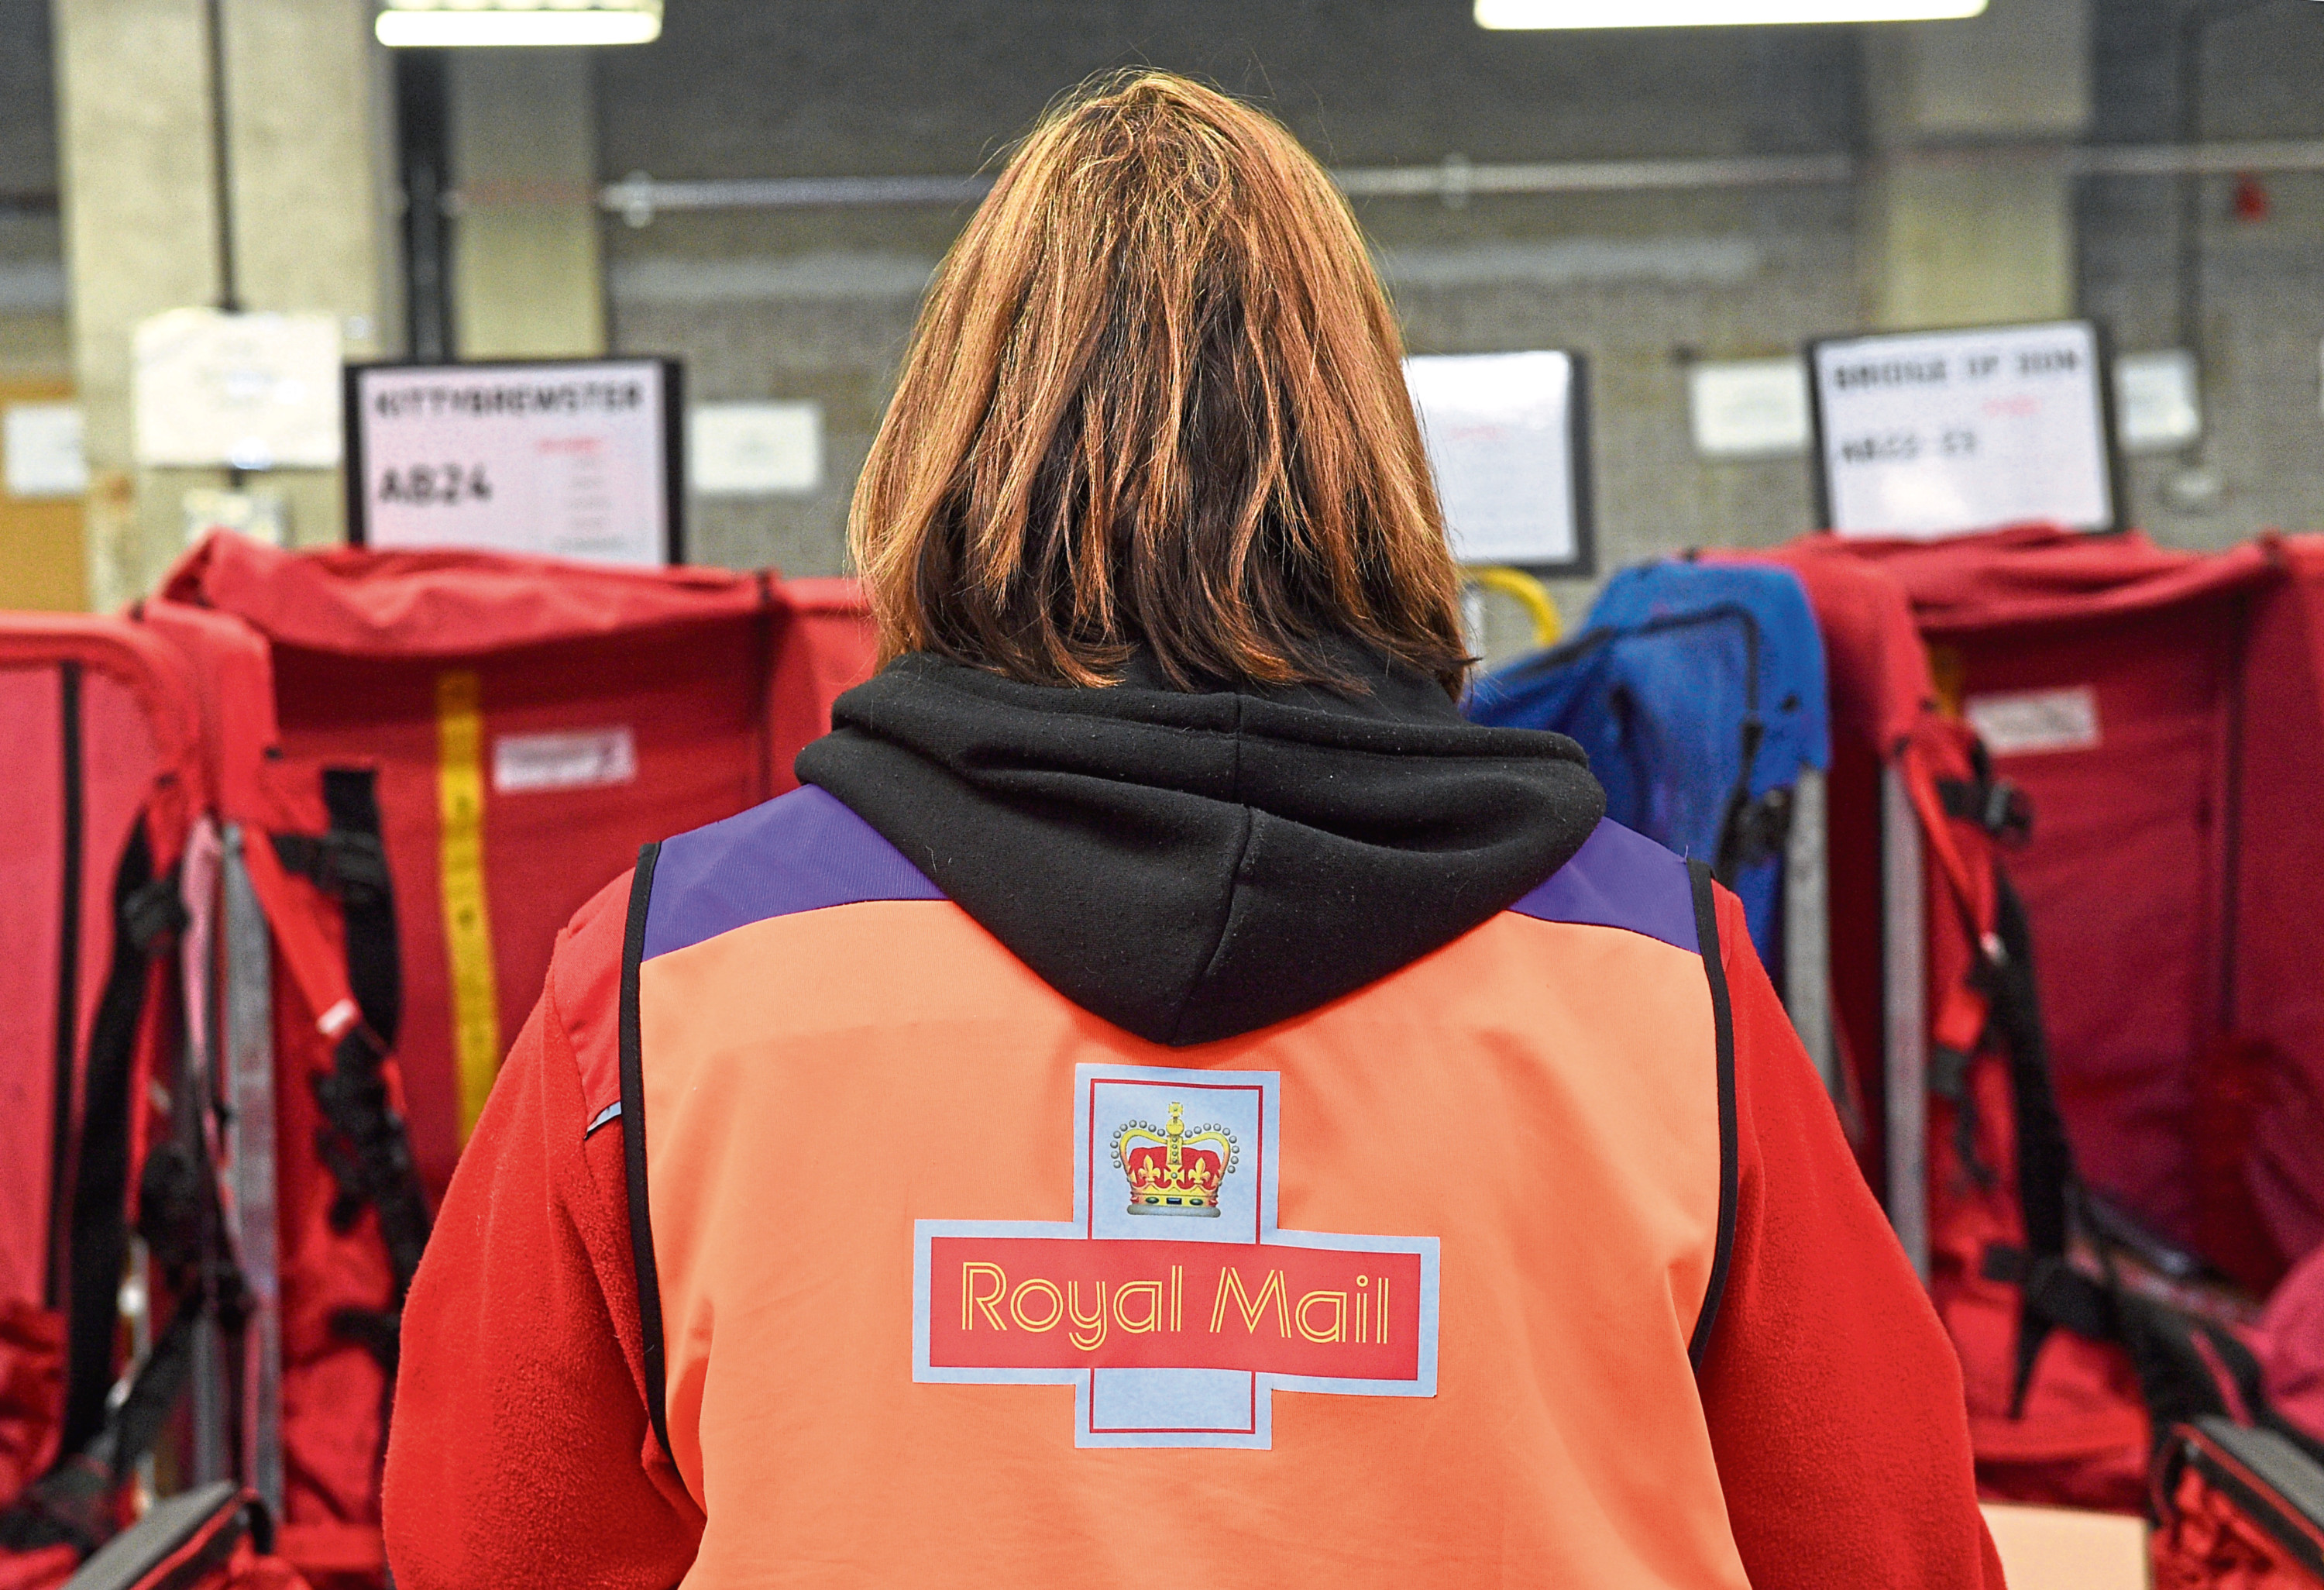 Royal Mail workers have been told not to give customers hand-held devices to sign